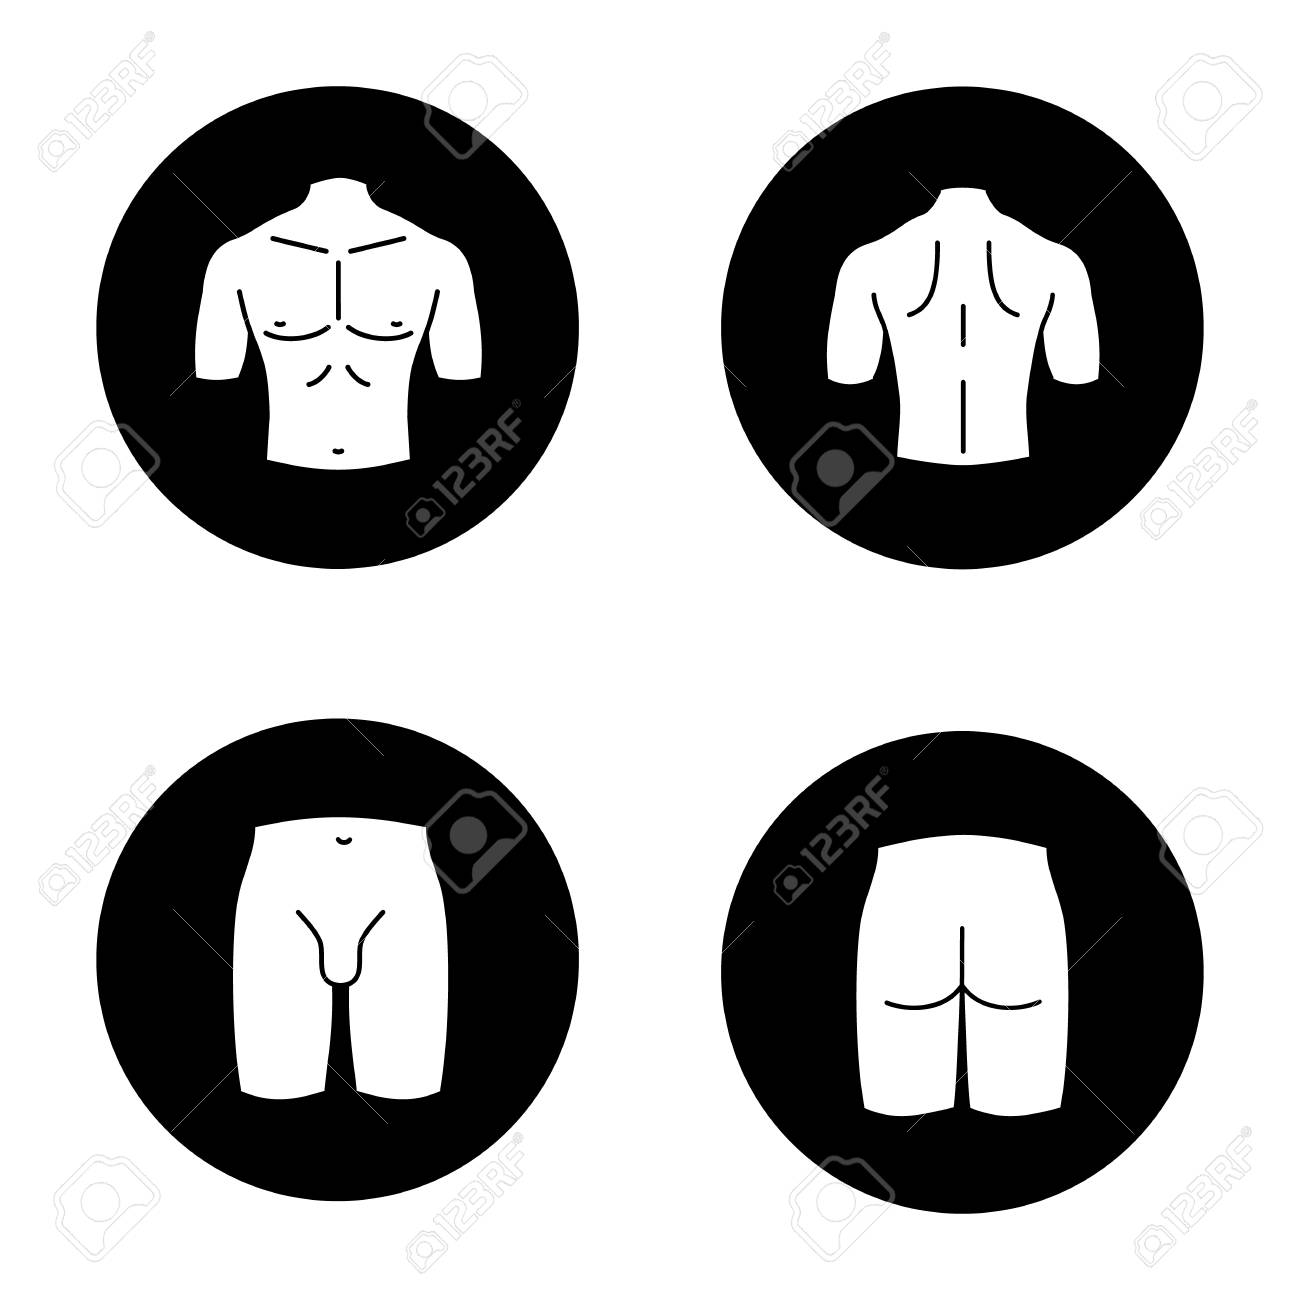 Male body parts glyph icons set. Muscular chest, back, groin, butt. Vector white silhouettes illustrations in black circles - 93566456